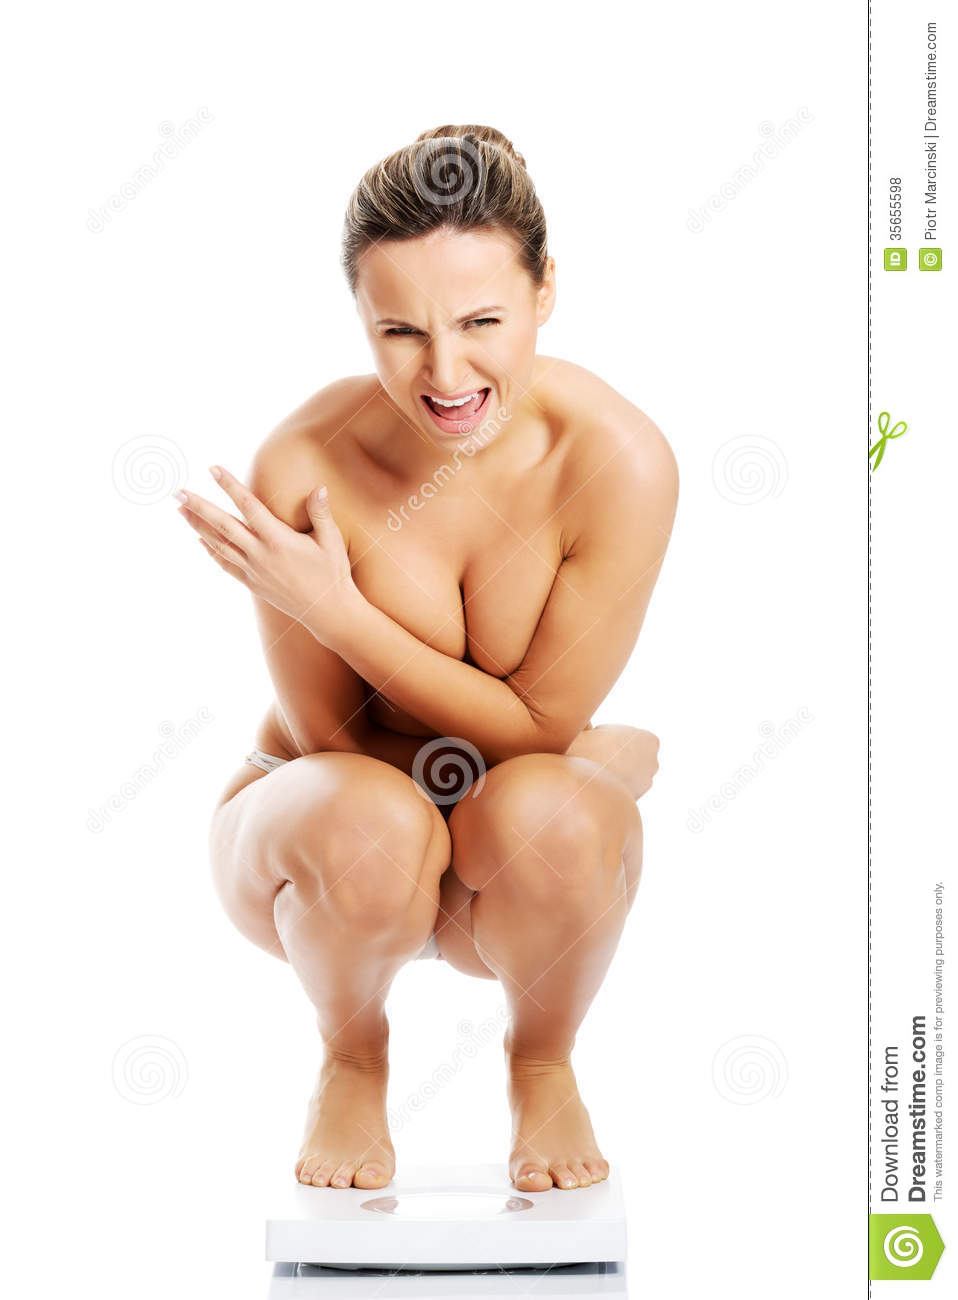 Naked Woman Picture Free 4